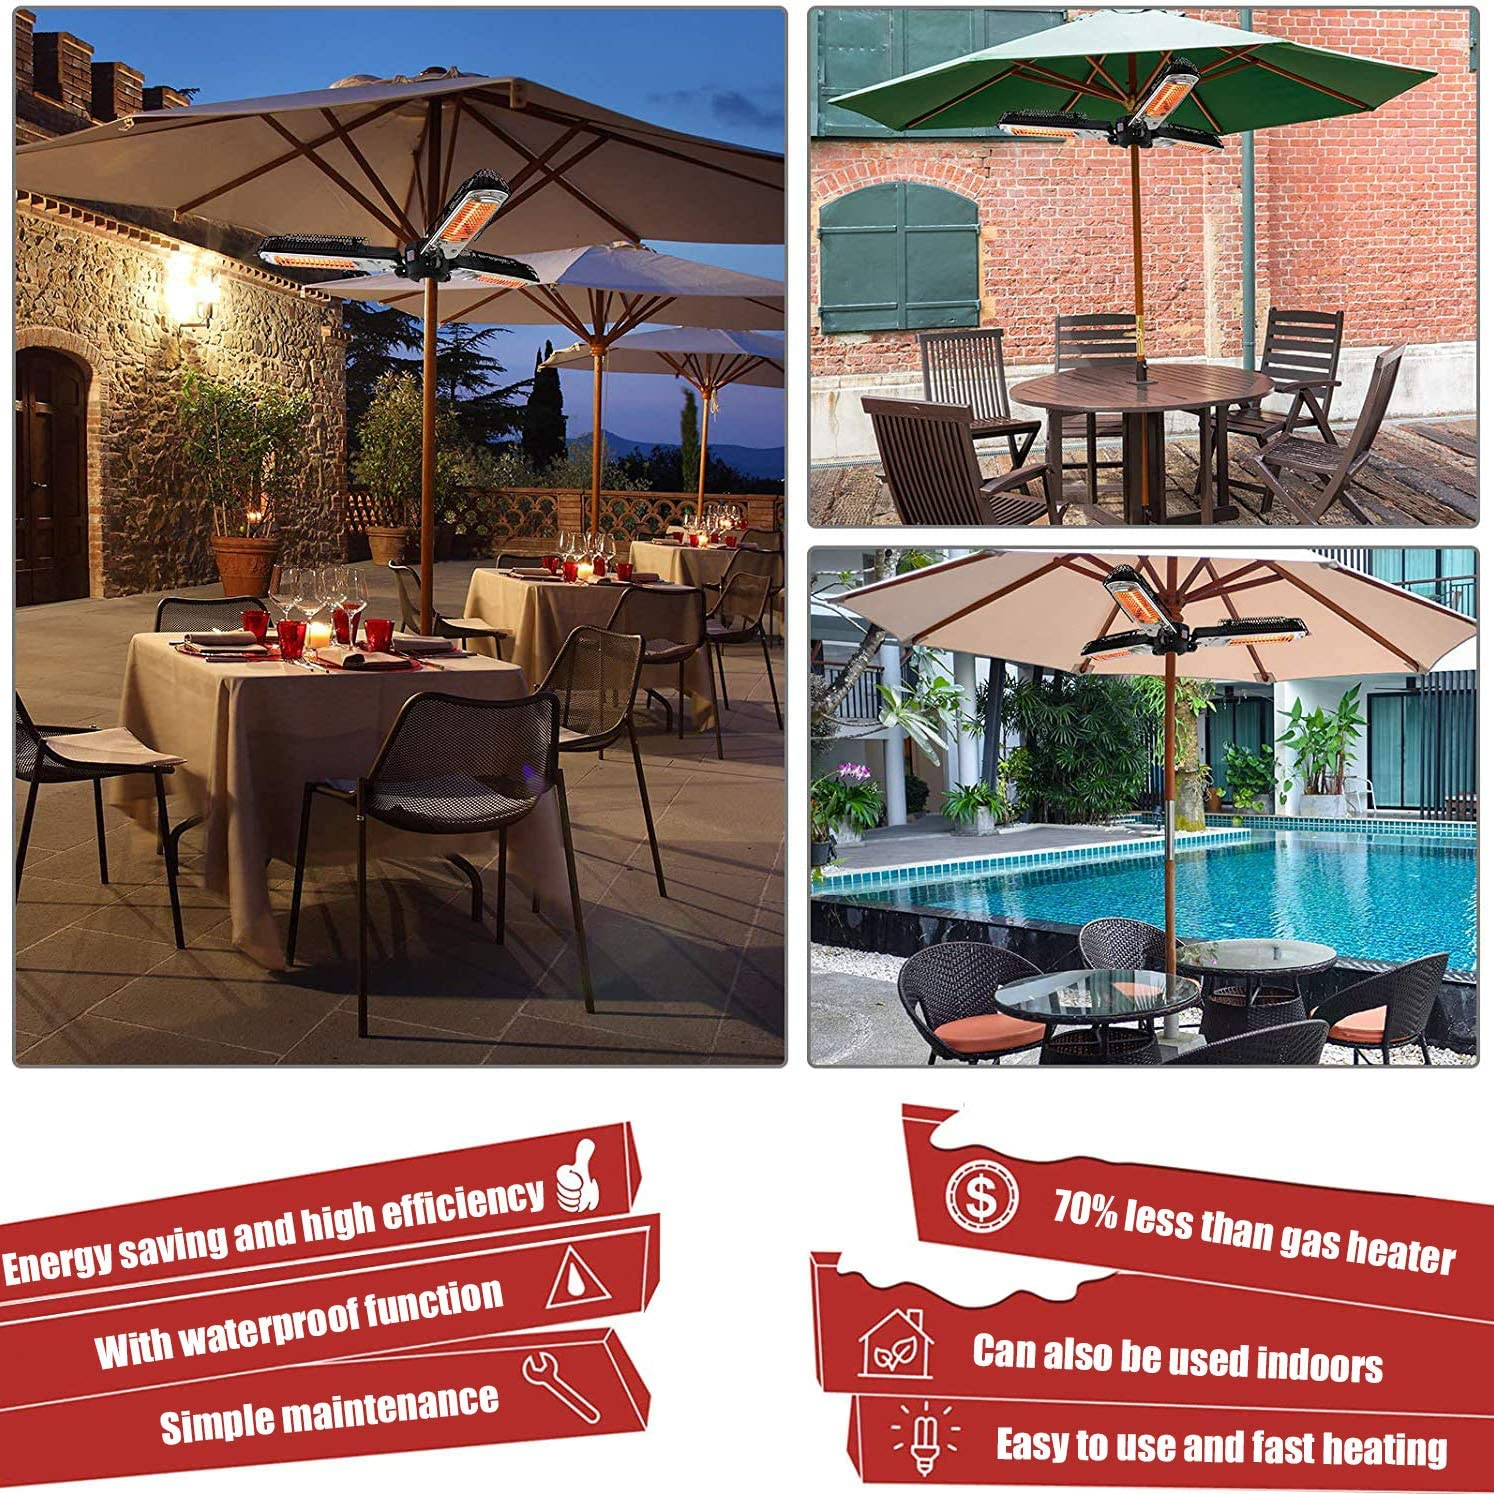 Infrared Outdoor Heaters Super Quiet 3s Instant Warm Weatherproof With 3 Adjustable Power Settings 650//1300//1950w for Pergola or Gazabo WANGXIAO Electric Patio Umbrella Heater